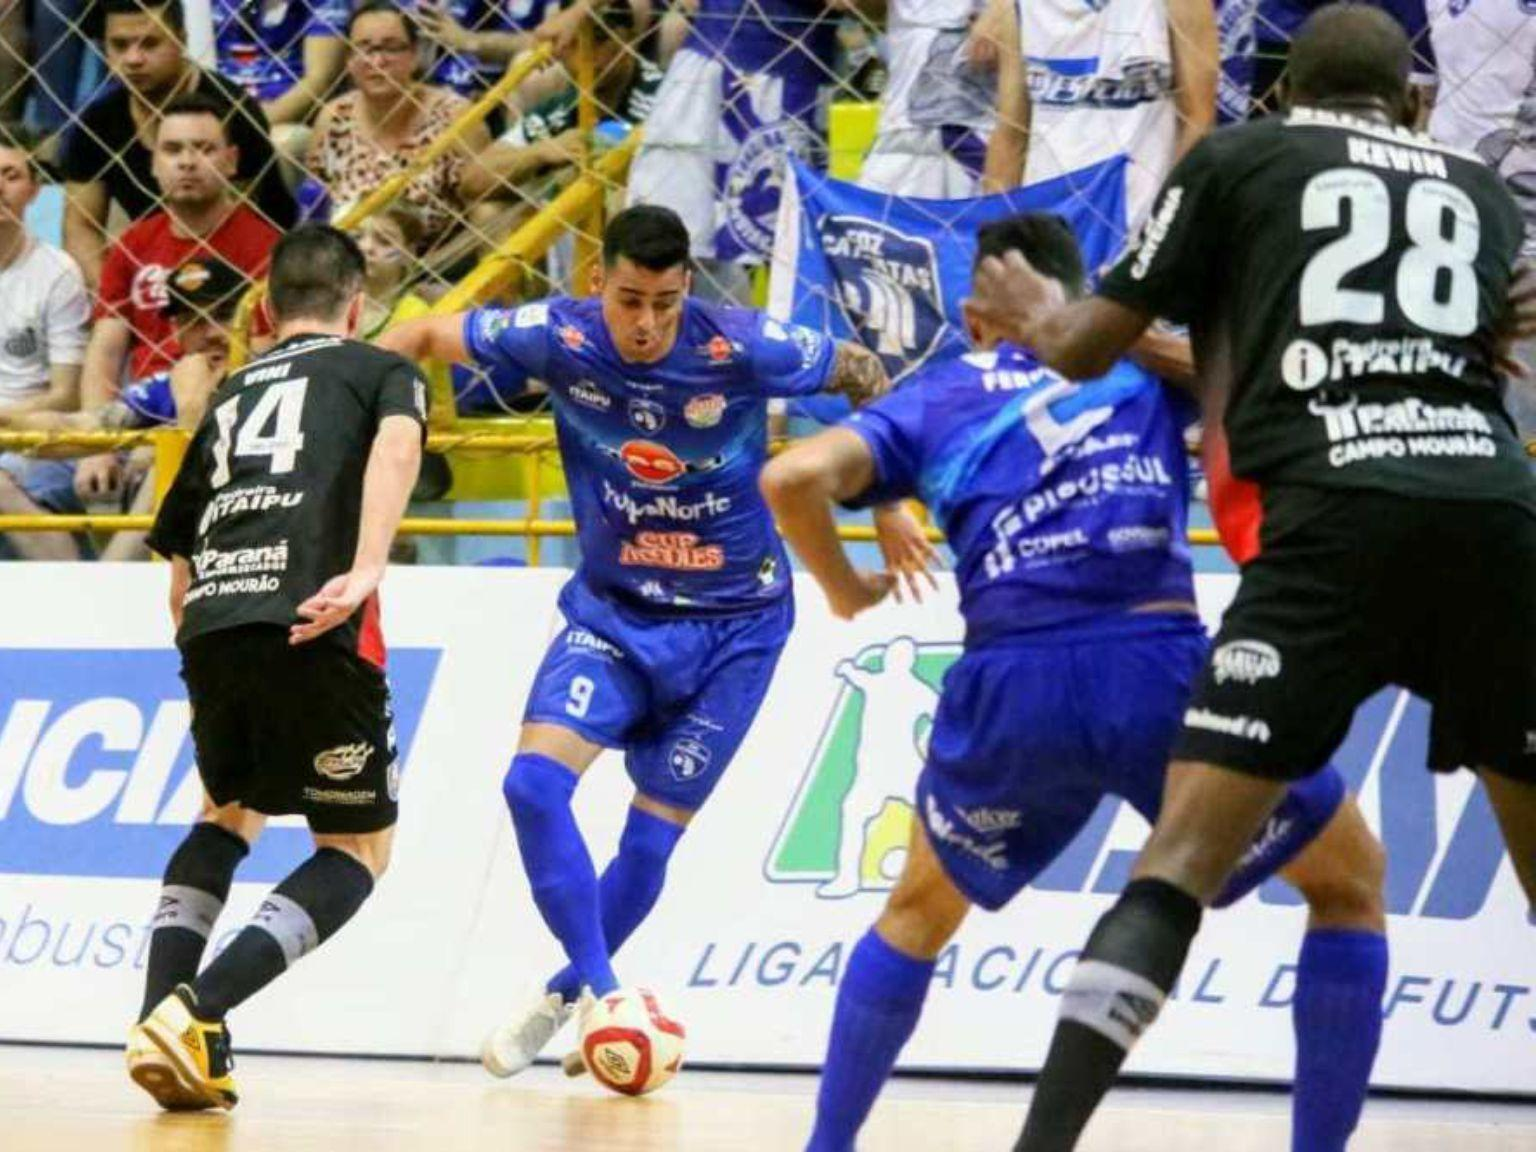 Foz Cataratas Futsal recebe o time de Guarapuava no Costa Cavalcanti